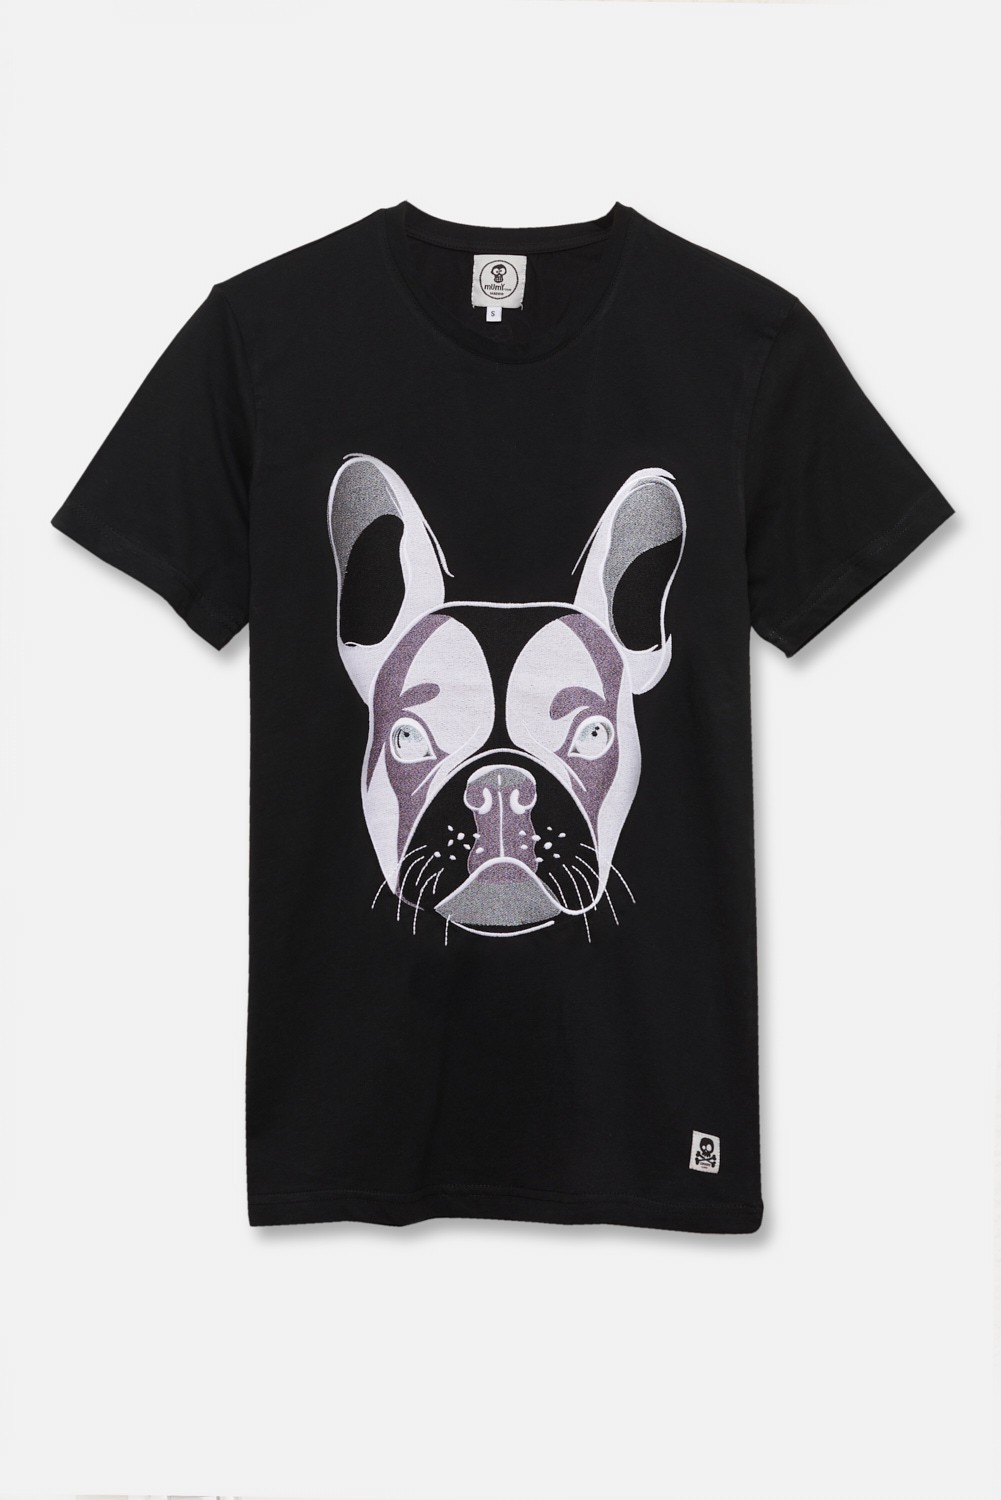 ADULT´S EMBROIDERED T-SHIRT BULLDOG HEAD